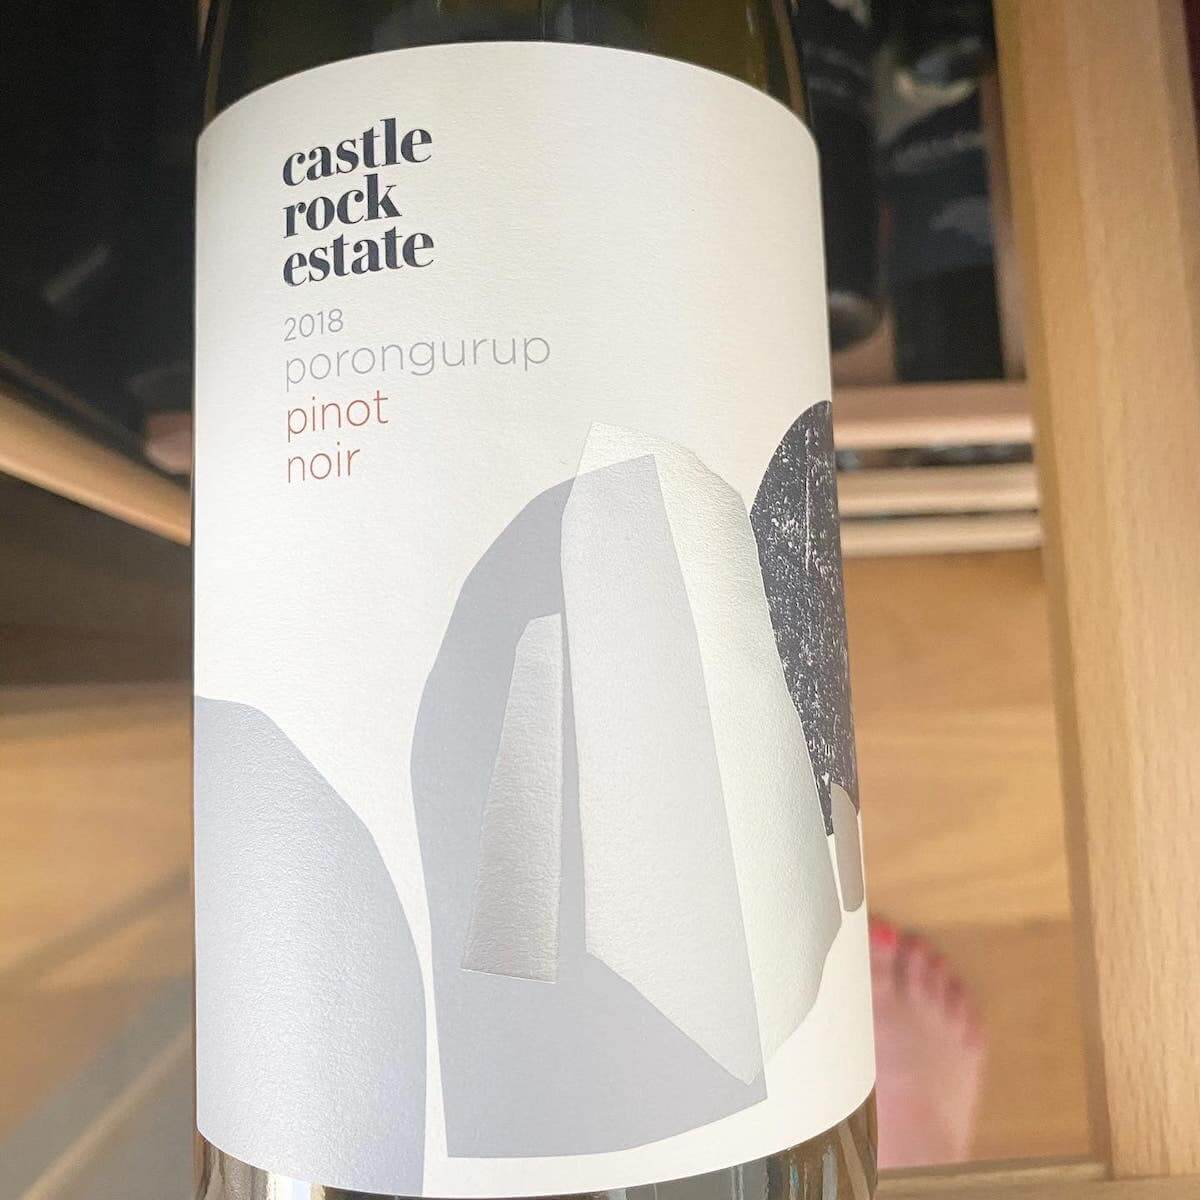 Castle-Rock-Estate-Porongurup-Pinot-Noir-2018